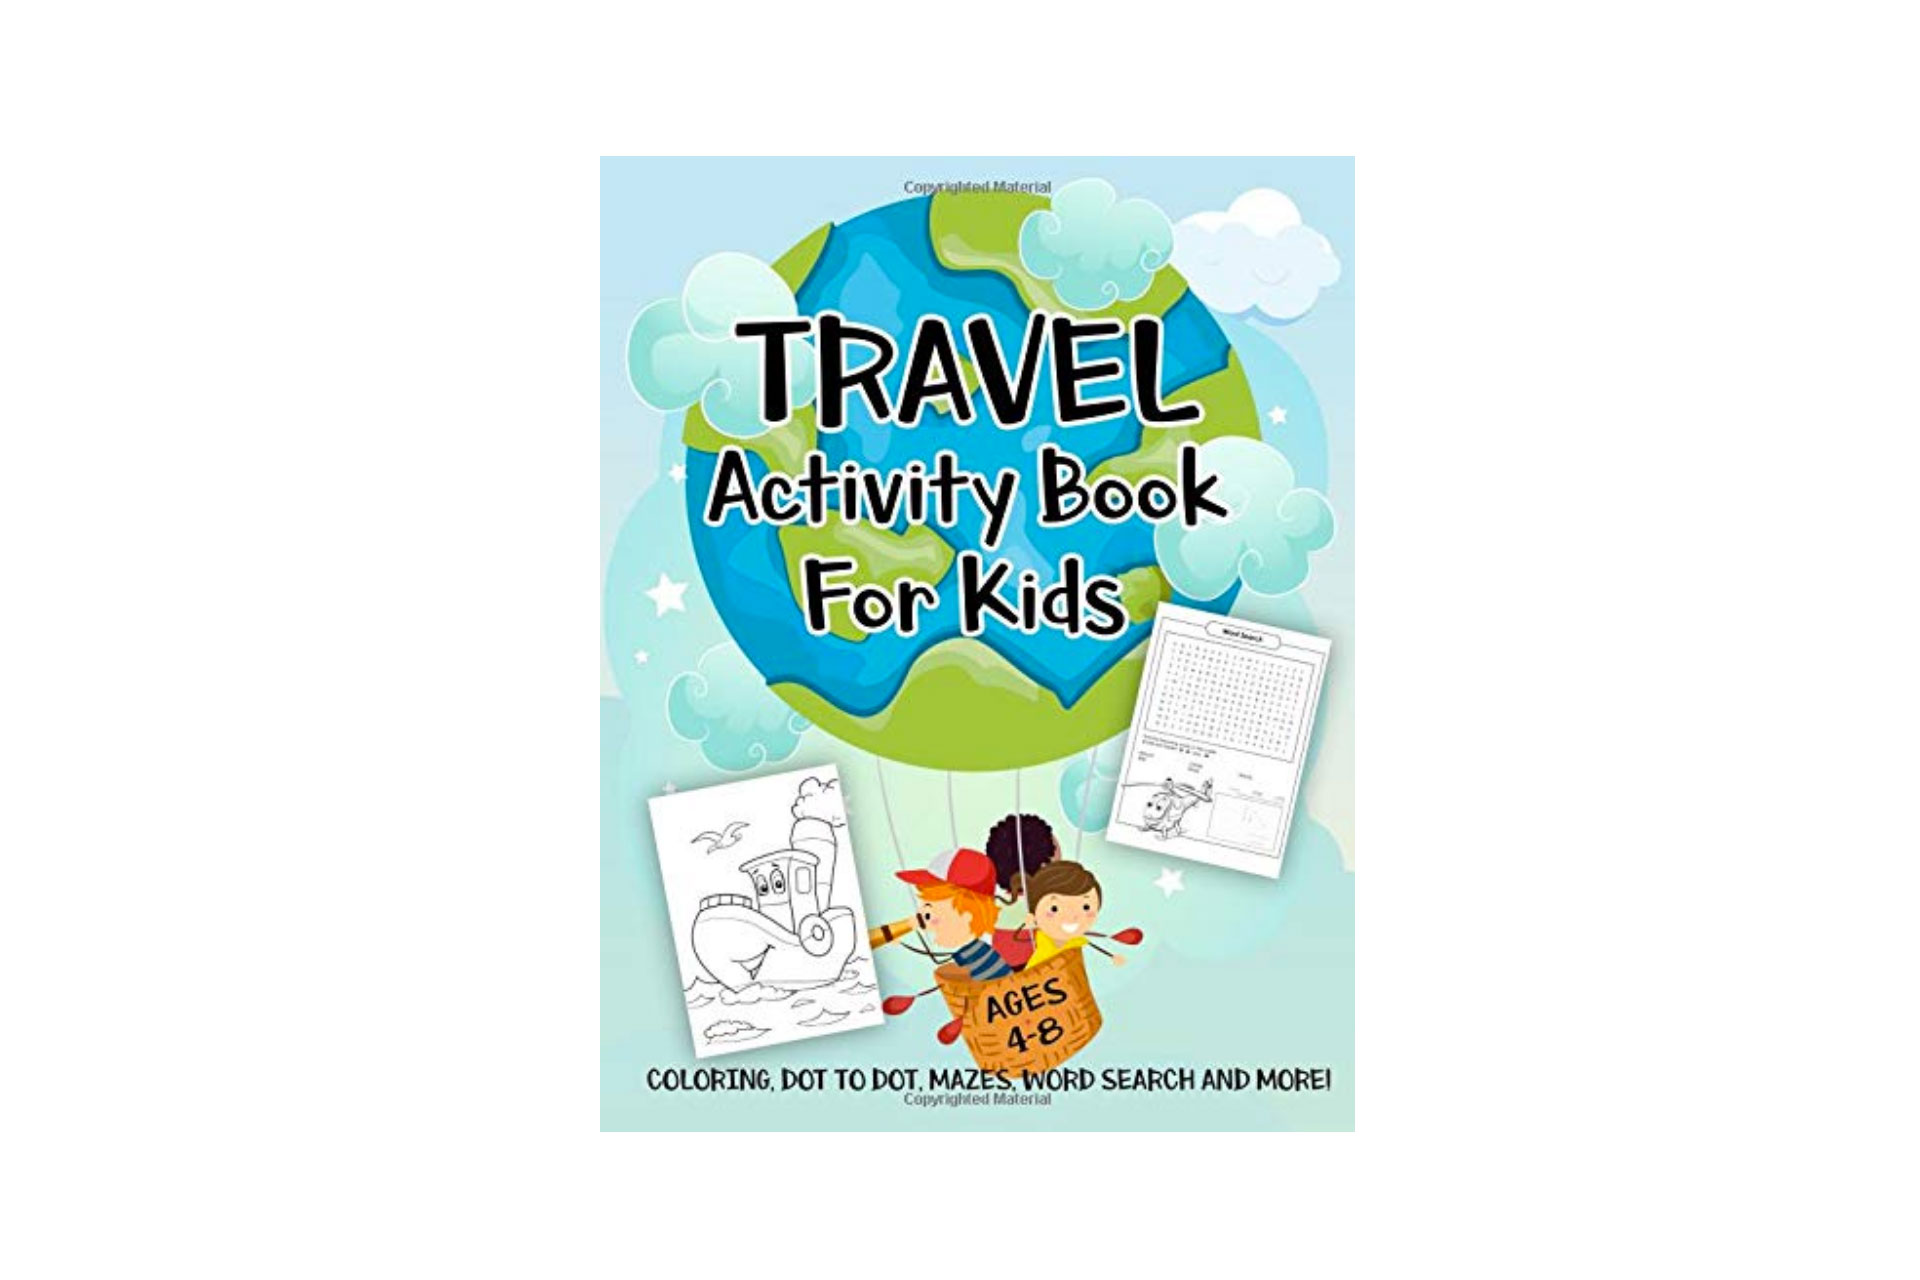 Travel Activity Book; Courtesy of Amazon